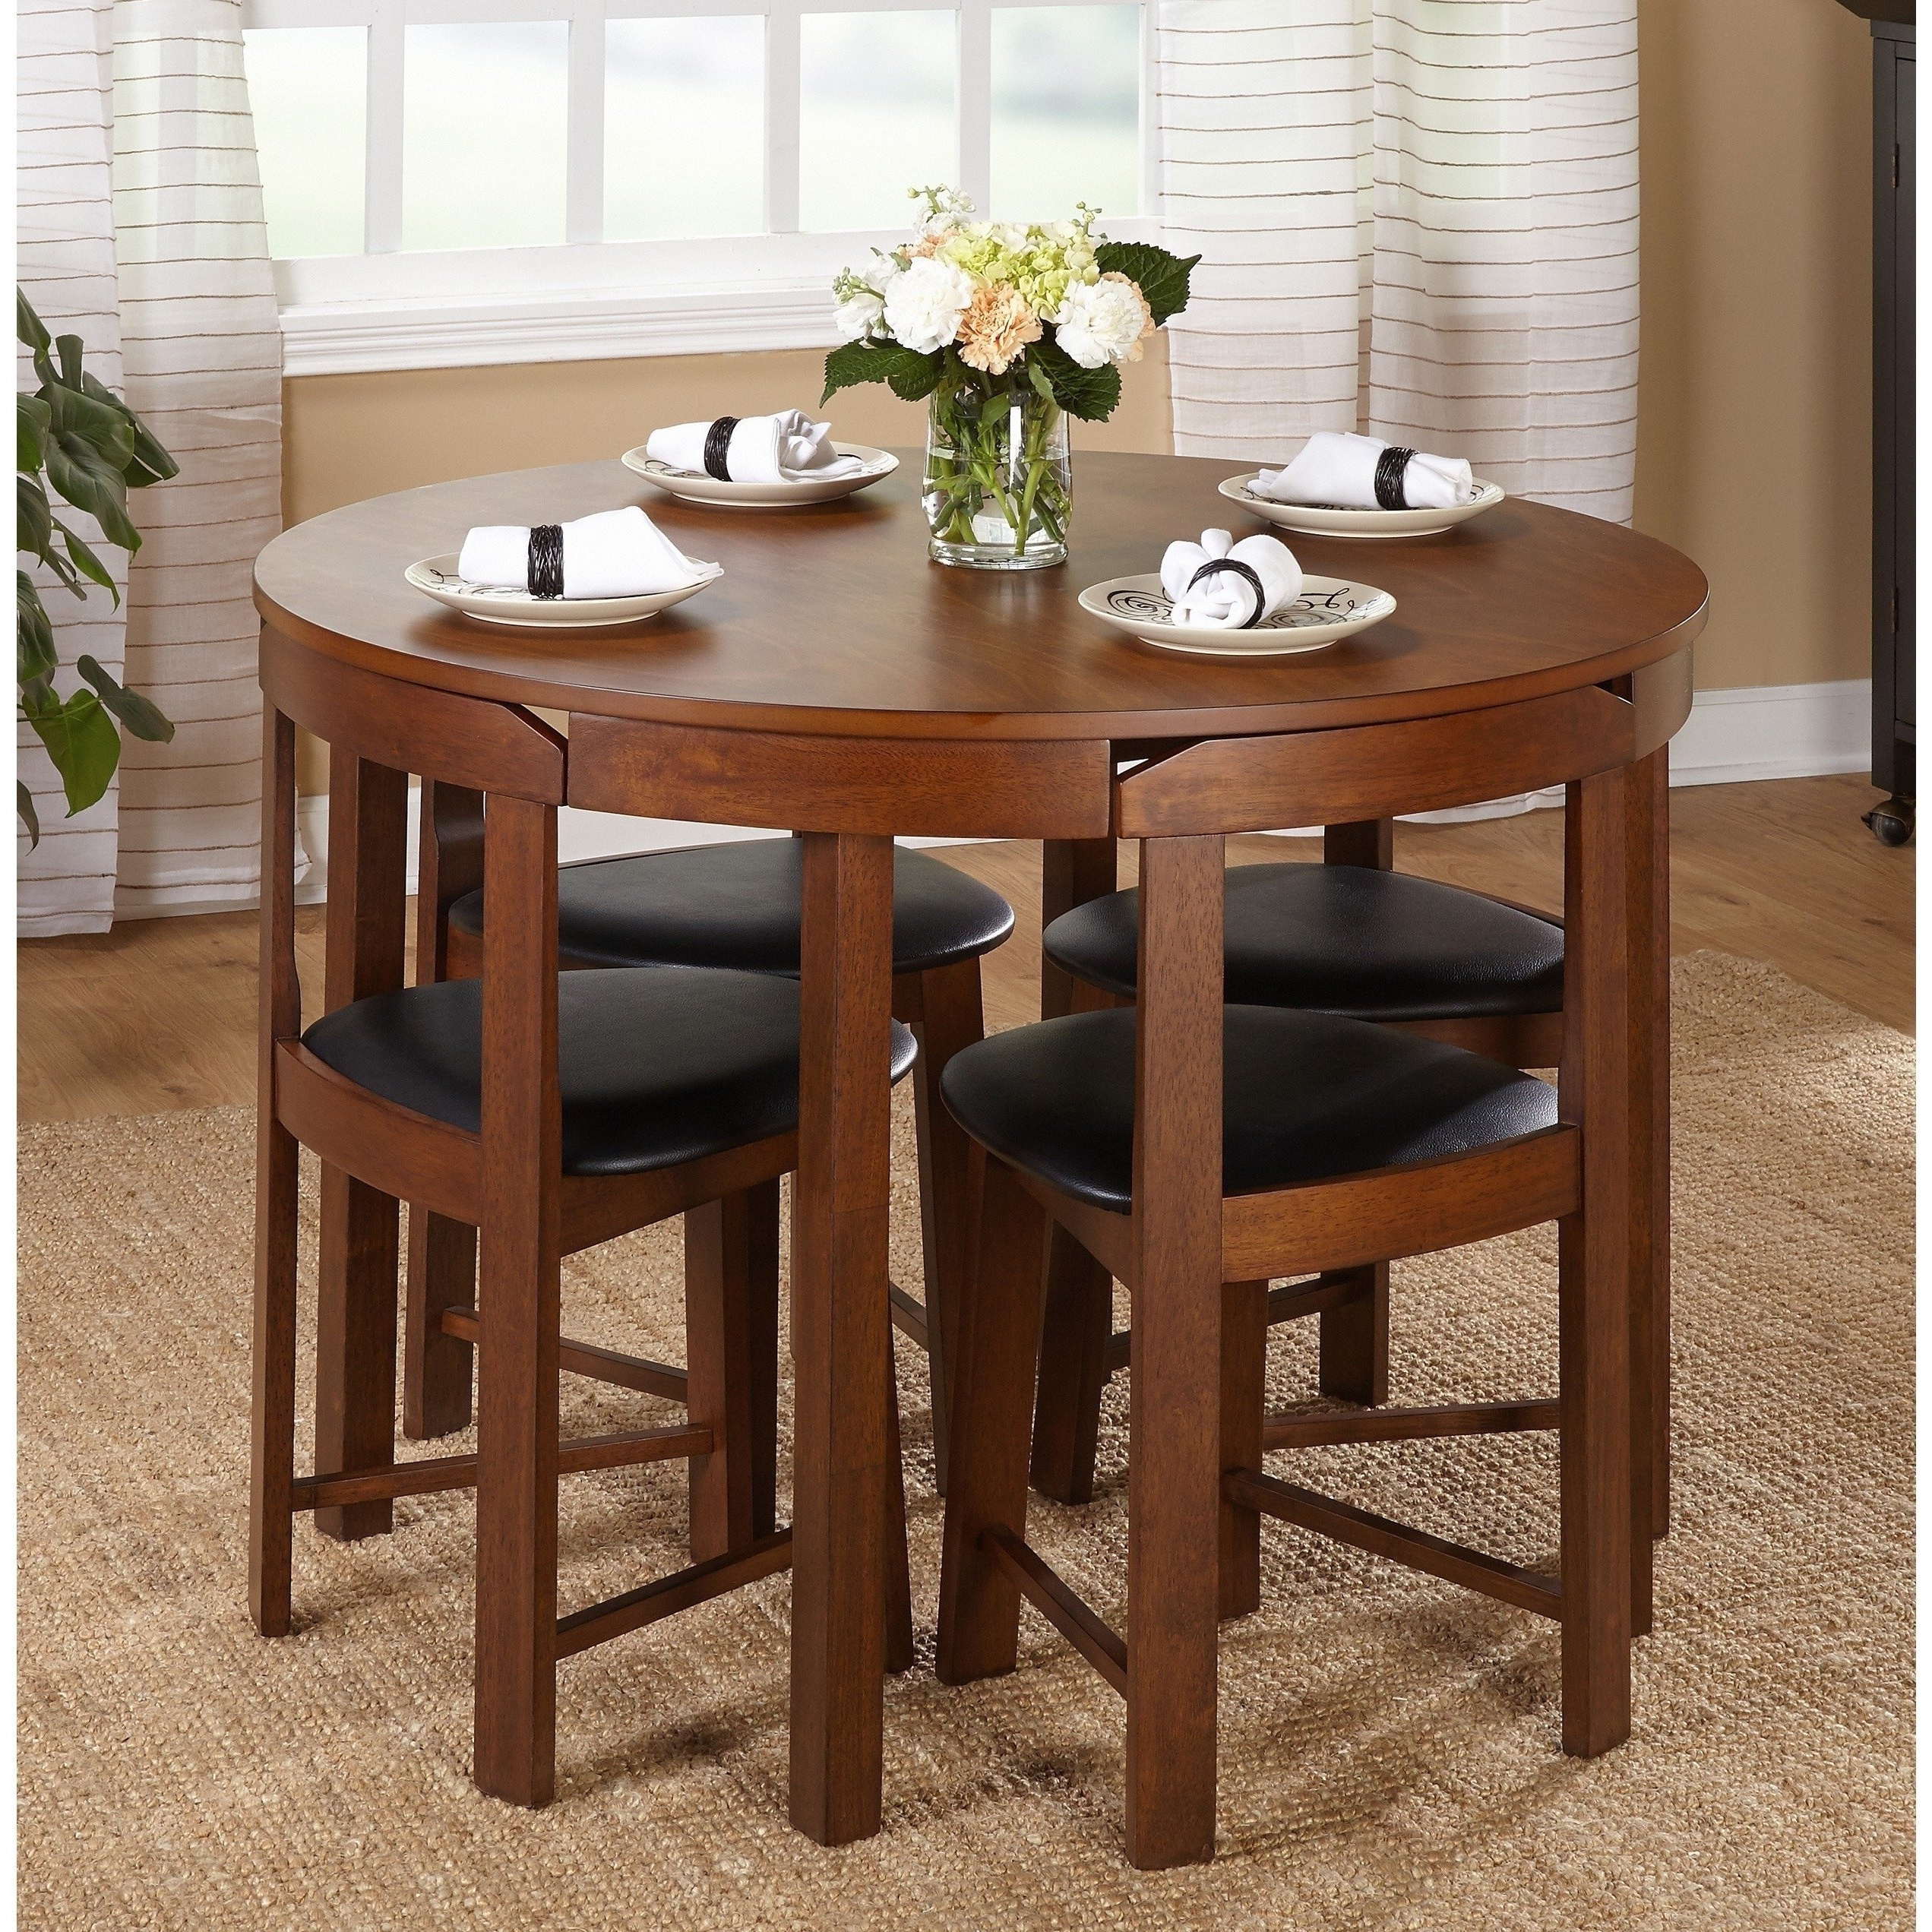 Shop Our Best Home Goods Deals Online At Overstock In Caira Black 5 Piece Round Dining Sets With Diamond Back Side Chairs (View 23 of 25)